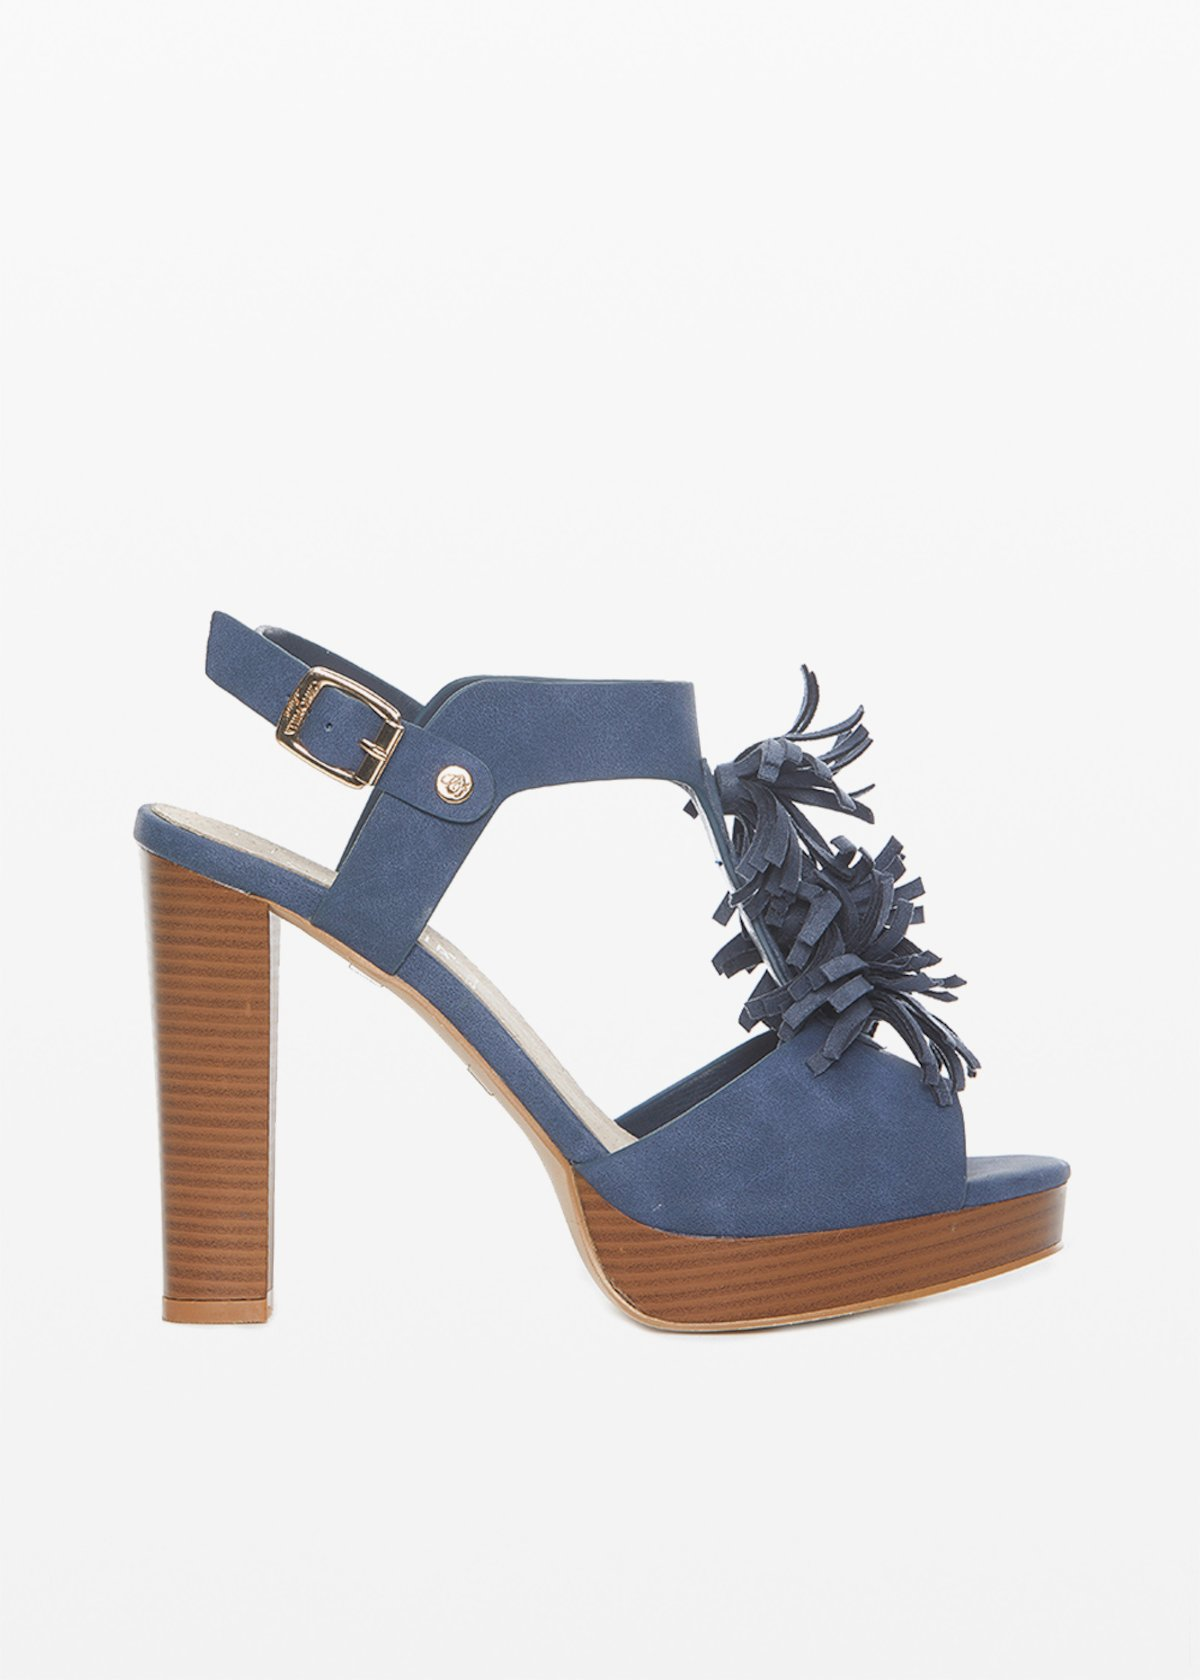 Samoah sandal with tassel and high heel